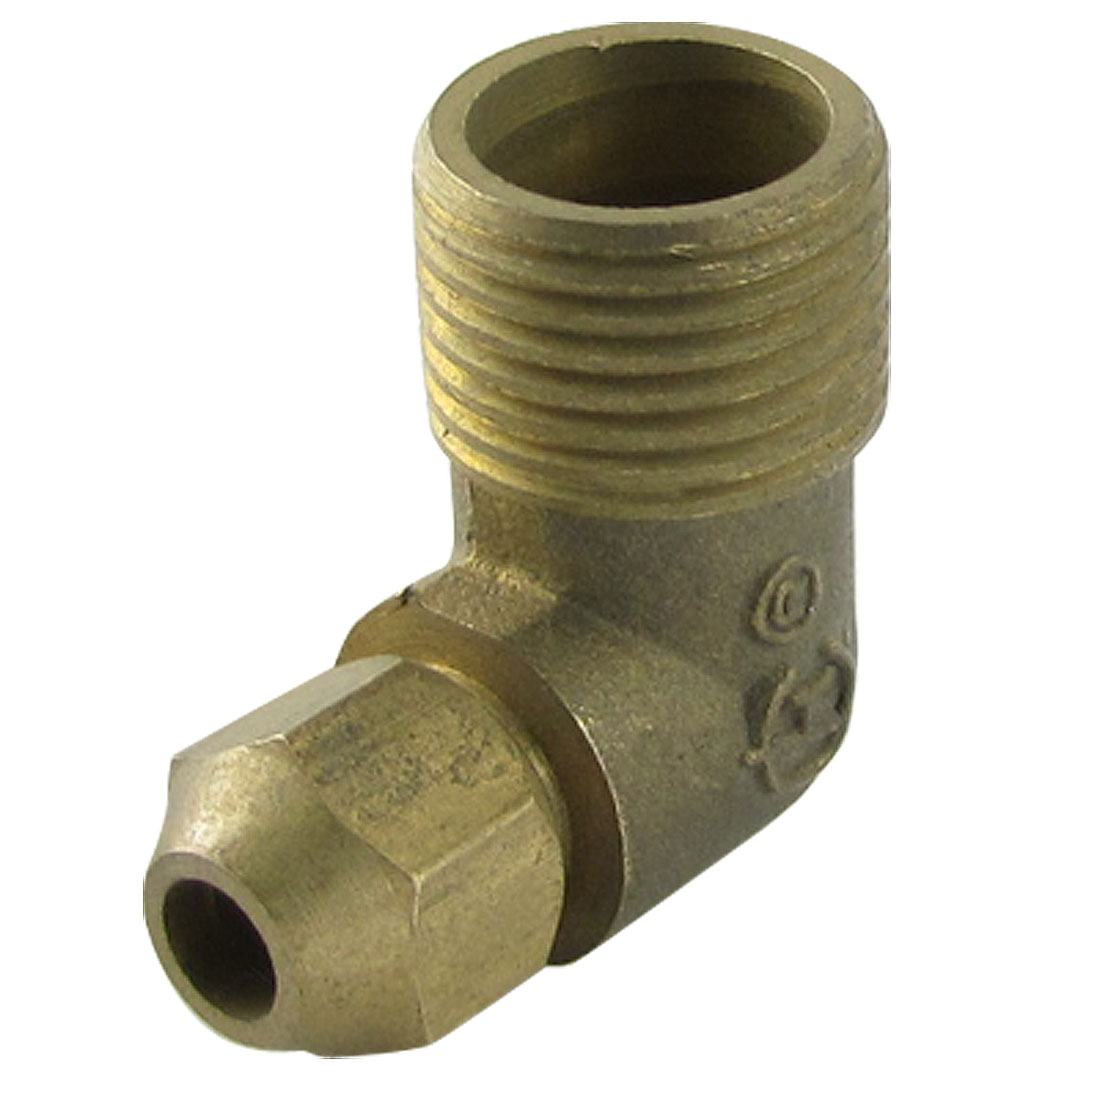 "4/5"" Dia Male Thread Brass Pipe Hose Adapter Coupler"